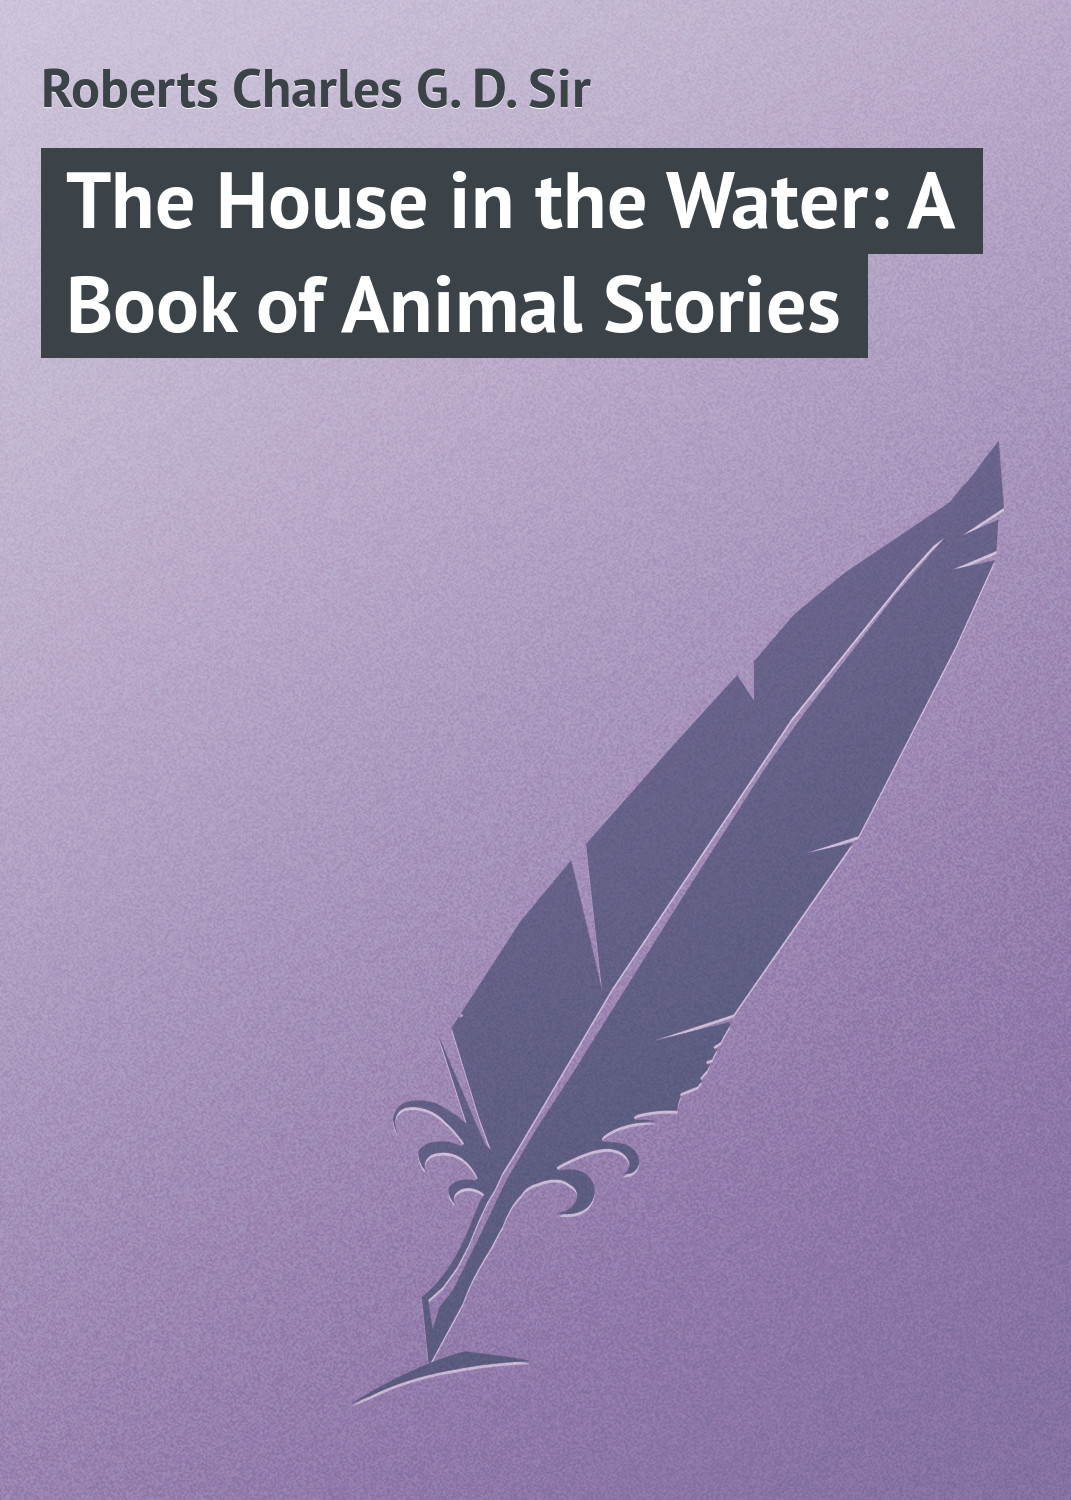 The House in the Water: A Book of Animal Stories